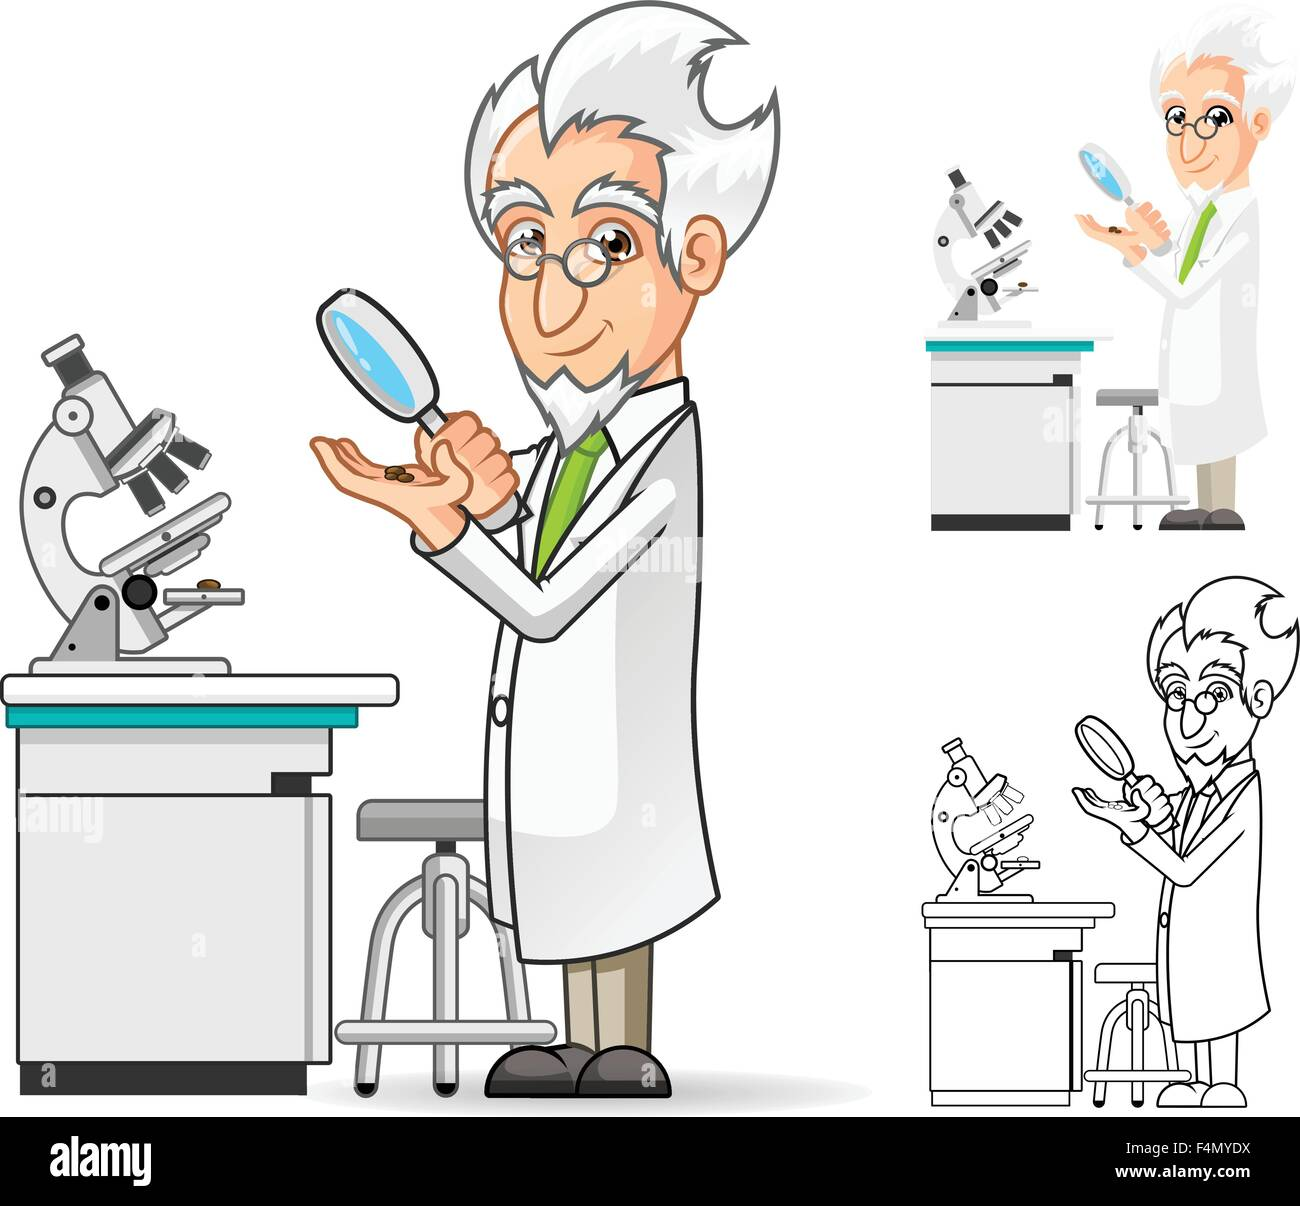 Scientist Cartoon Character Holding A Magnifying Glass